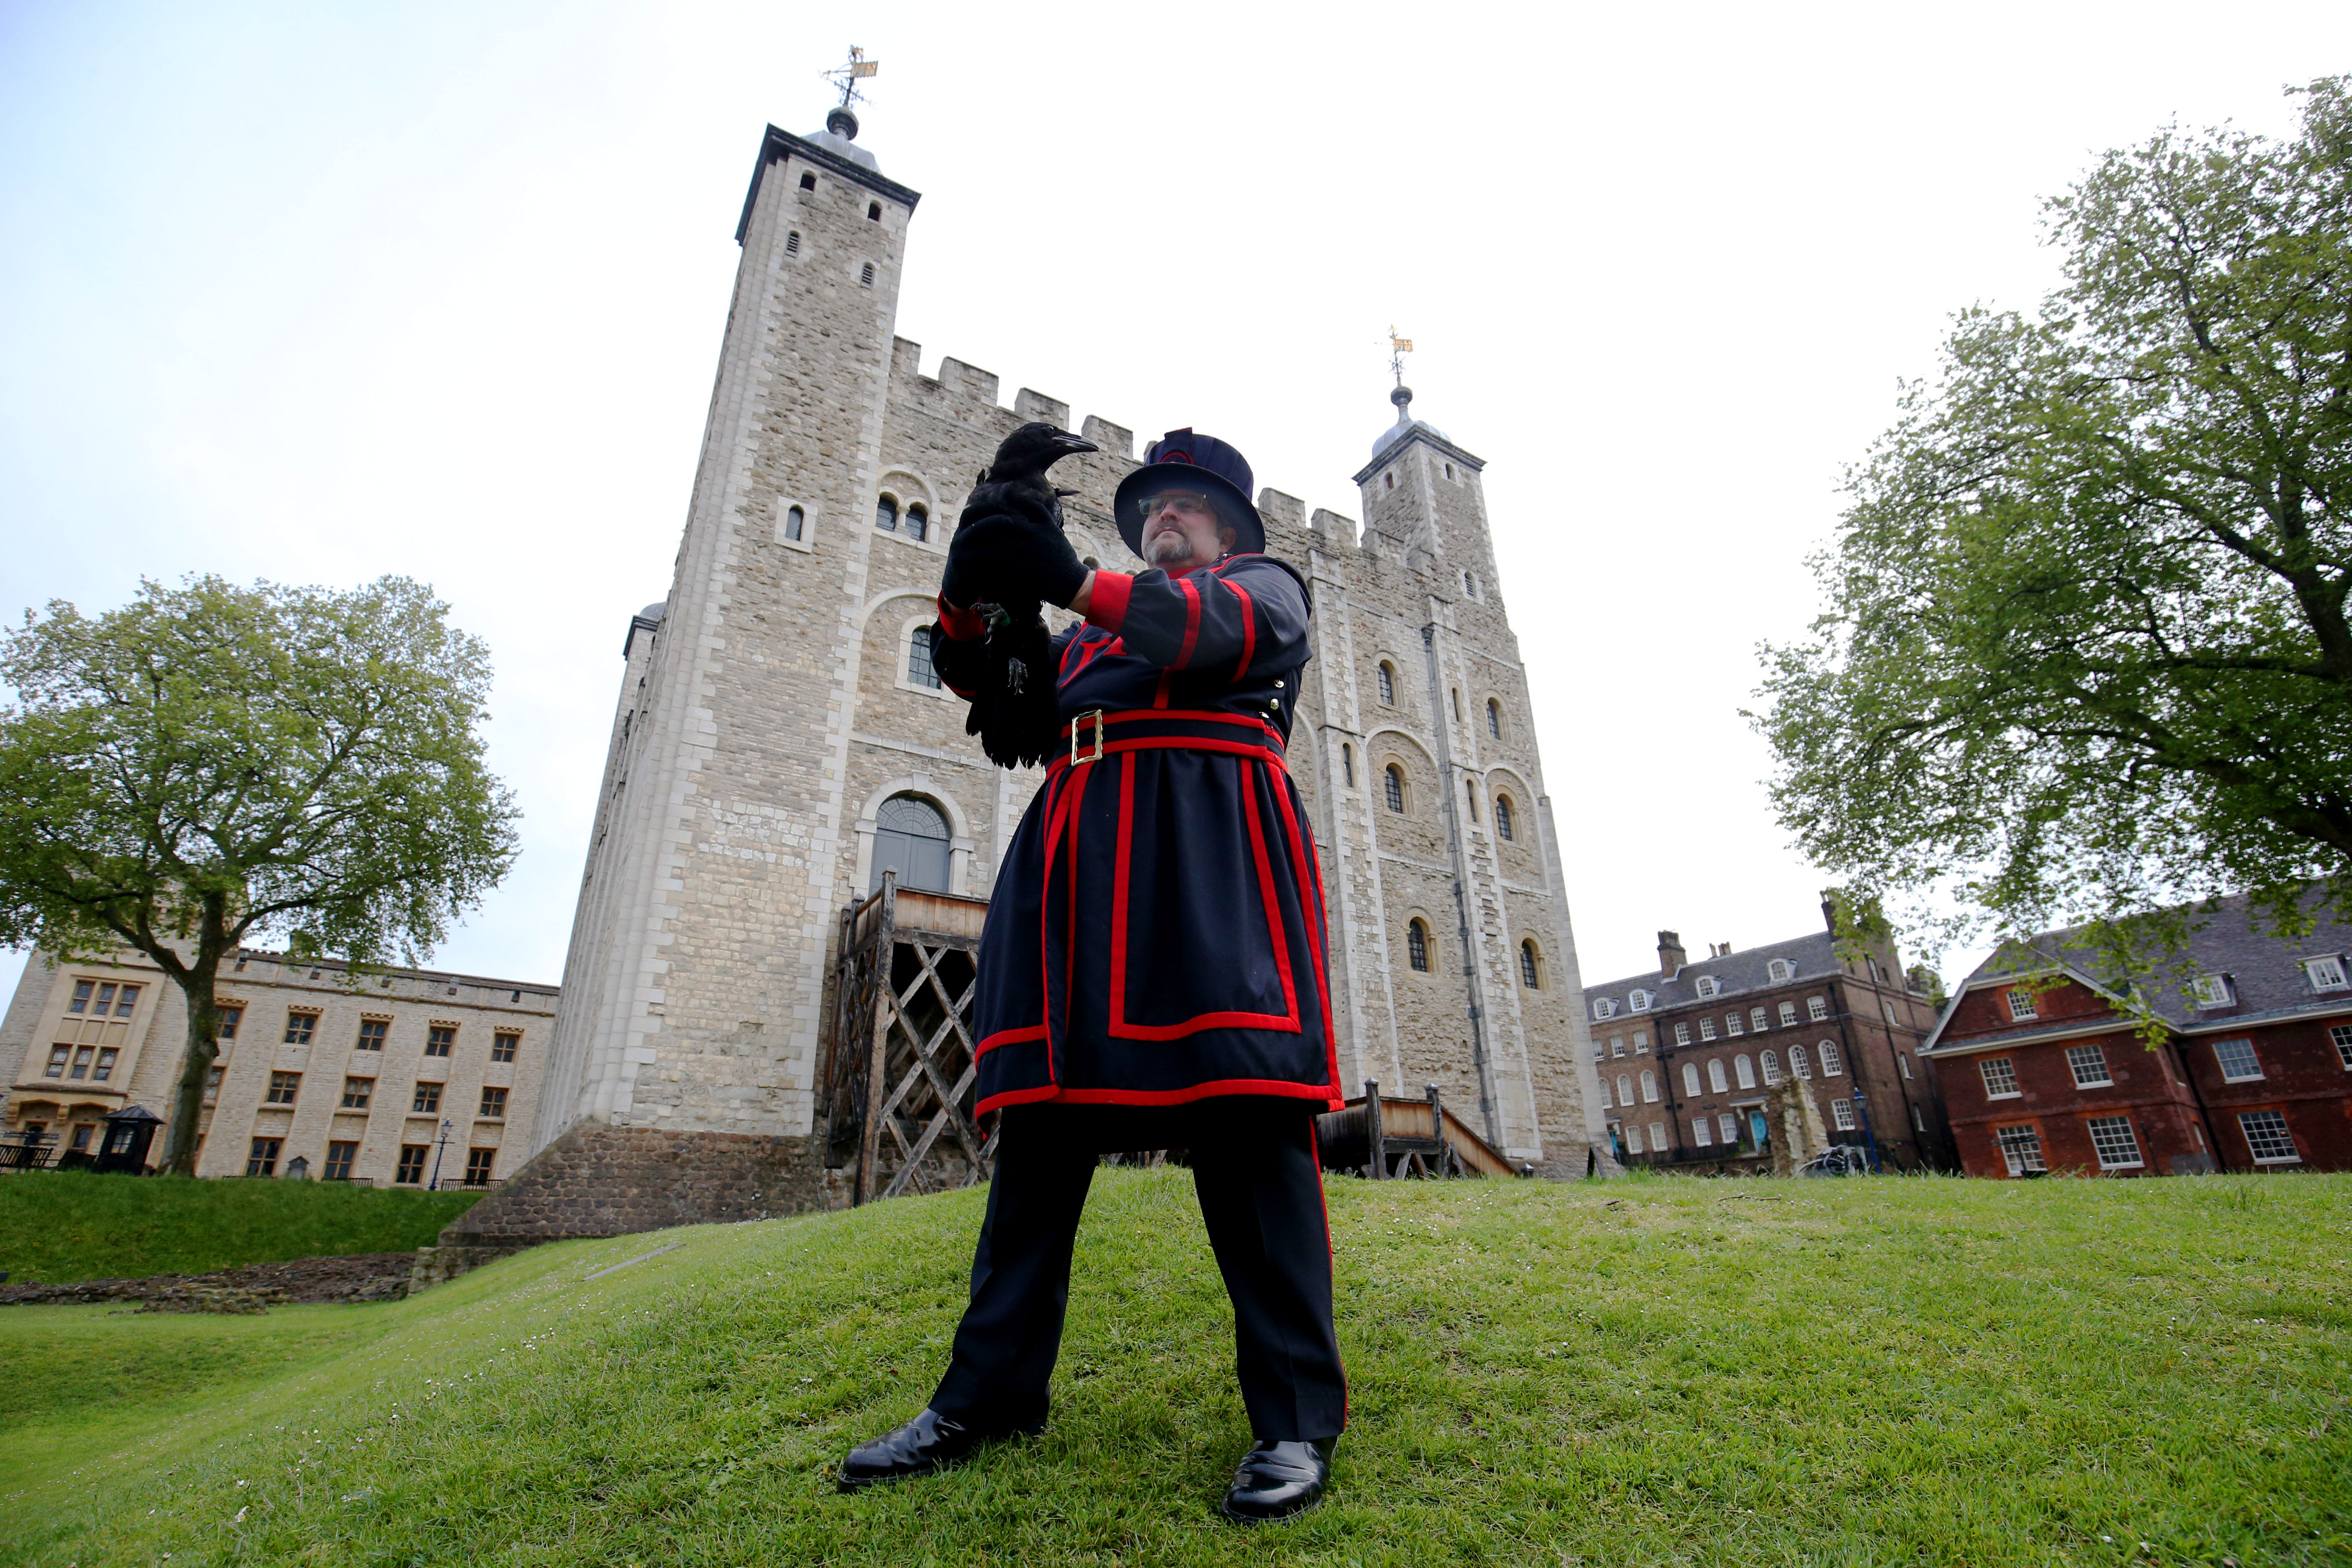 <p>Raven master Chris Scaife holds aloft Branwen, one of the two latest additions to the tower's conspiracy of ravens, in front of the White Tower at the Tower of London, which is reopening amidst the easing of coronavirus restrictions after its longest closure since World War Two. Picture date: Wednesday May 19, 2021.</p>